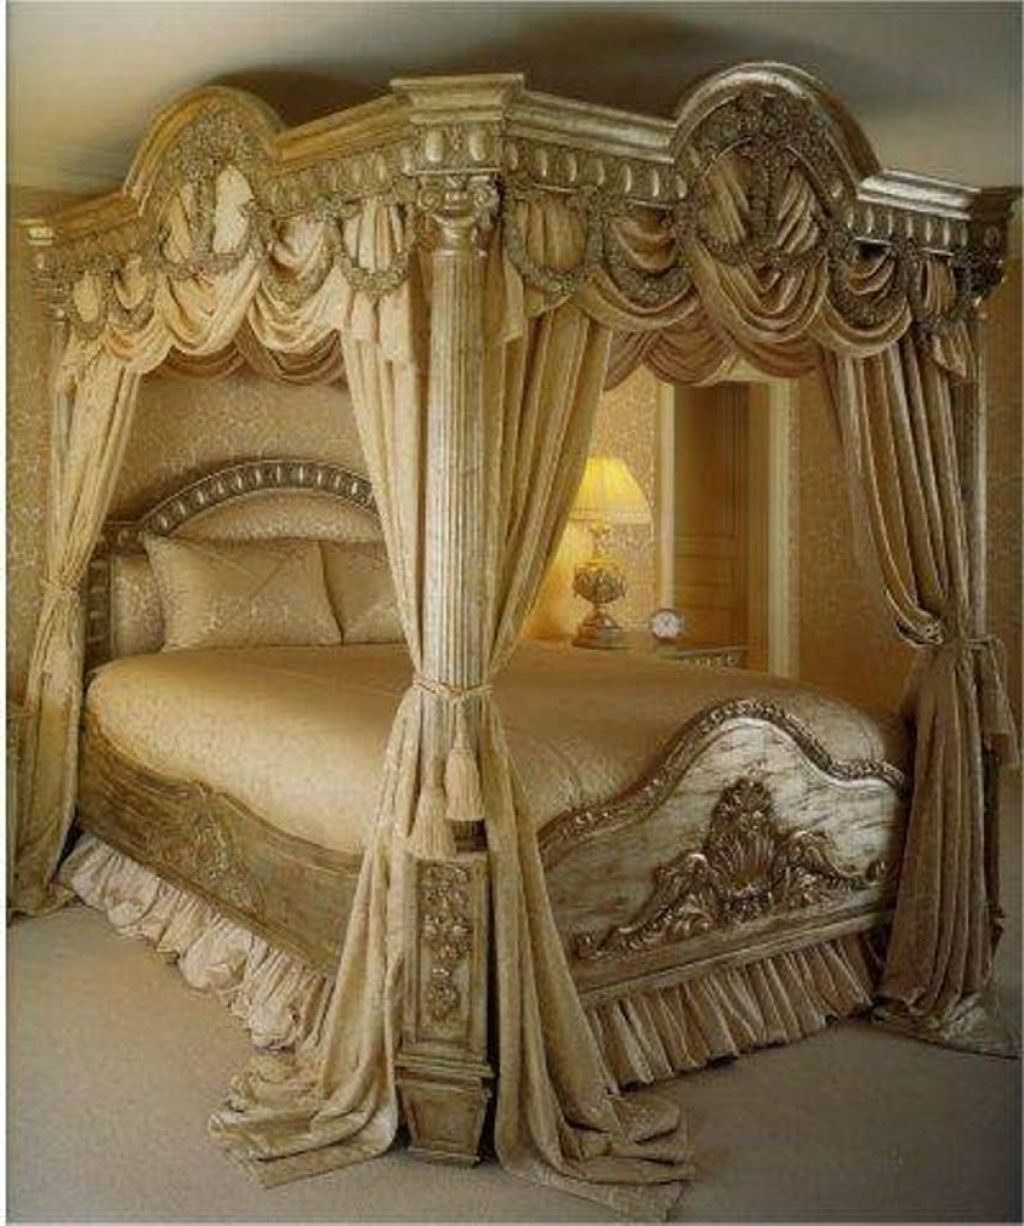 Unique Bedroom Dcor Ideas You Havent Seen Before Victorian